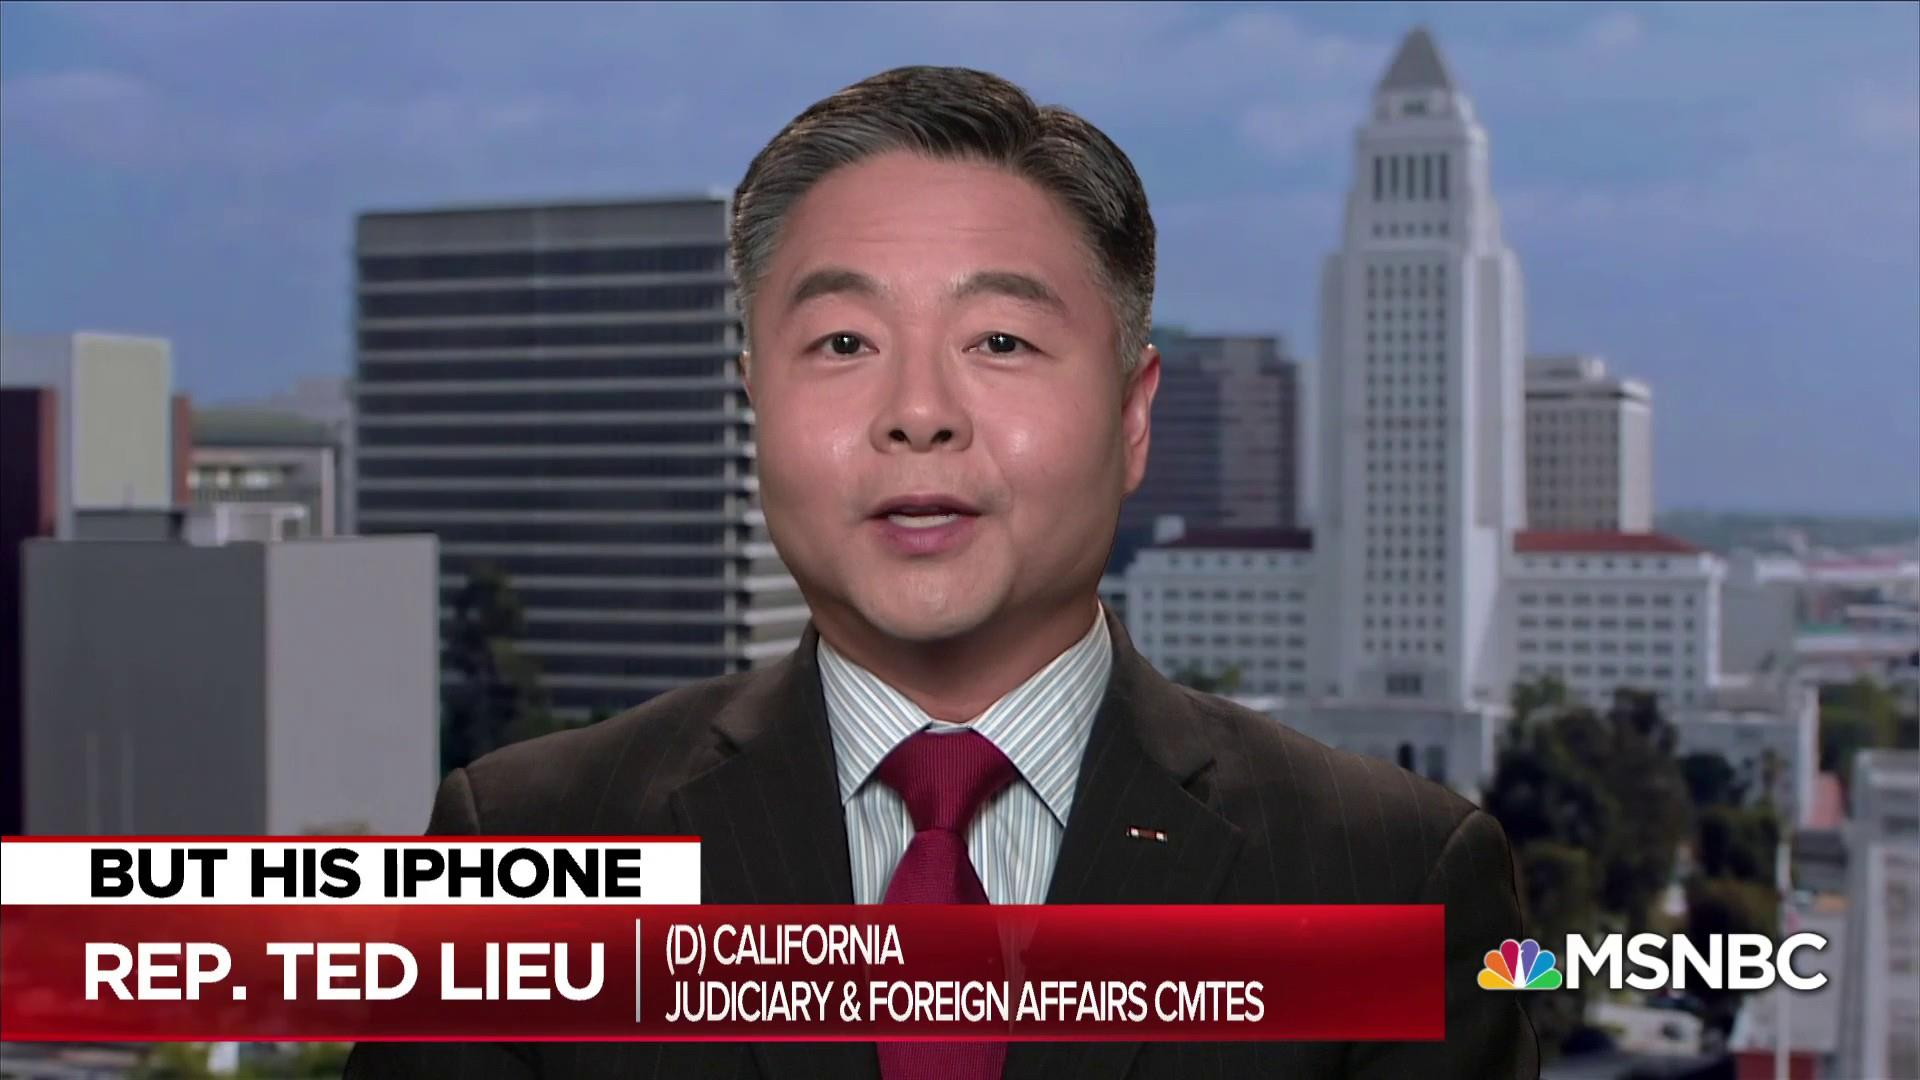 Congressman Lieu destroys Trump over email and iPhone hypocrisy